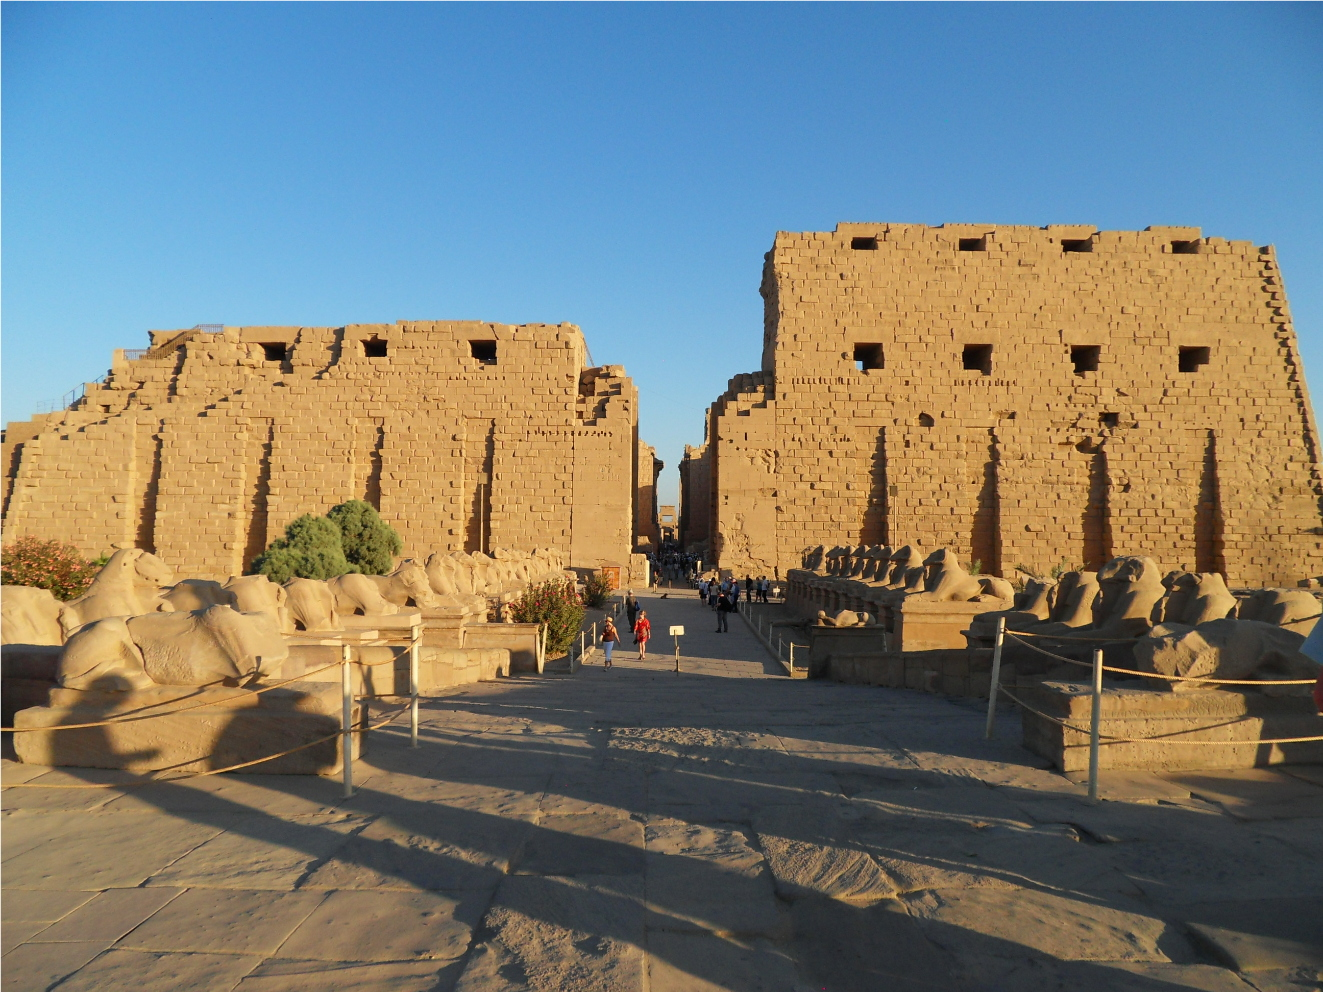 Karnak Temple is part of the history of Ancient Egypt